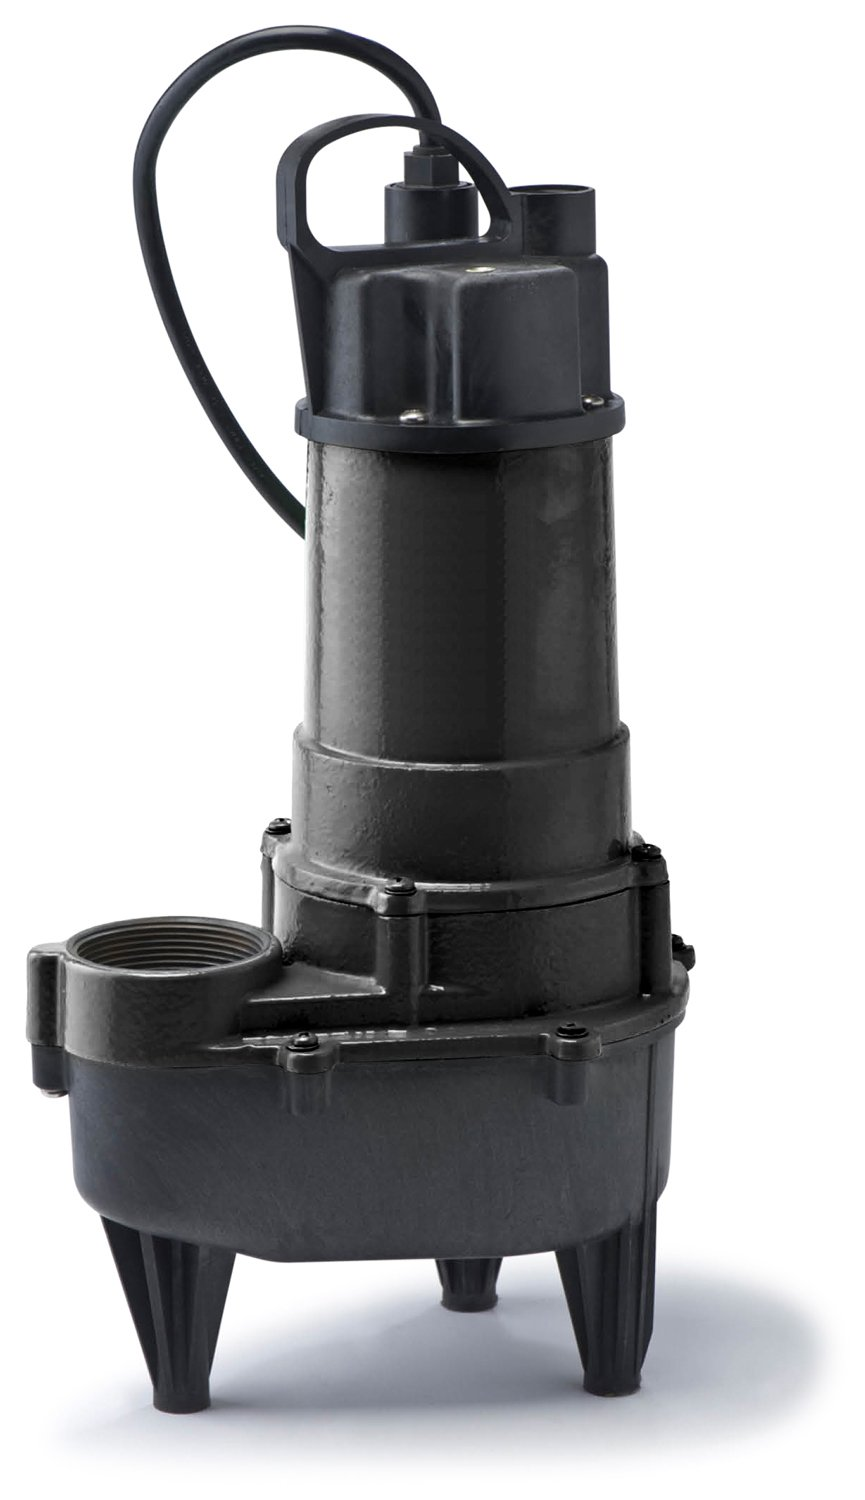 ECO-FLO Products RSE50M Manual Cast Iron Sewage Pump, 1/2 HP, 7,800 GPH by ECO-FLO PRODUCTS INCORPORATED